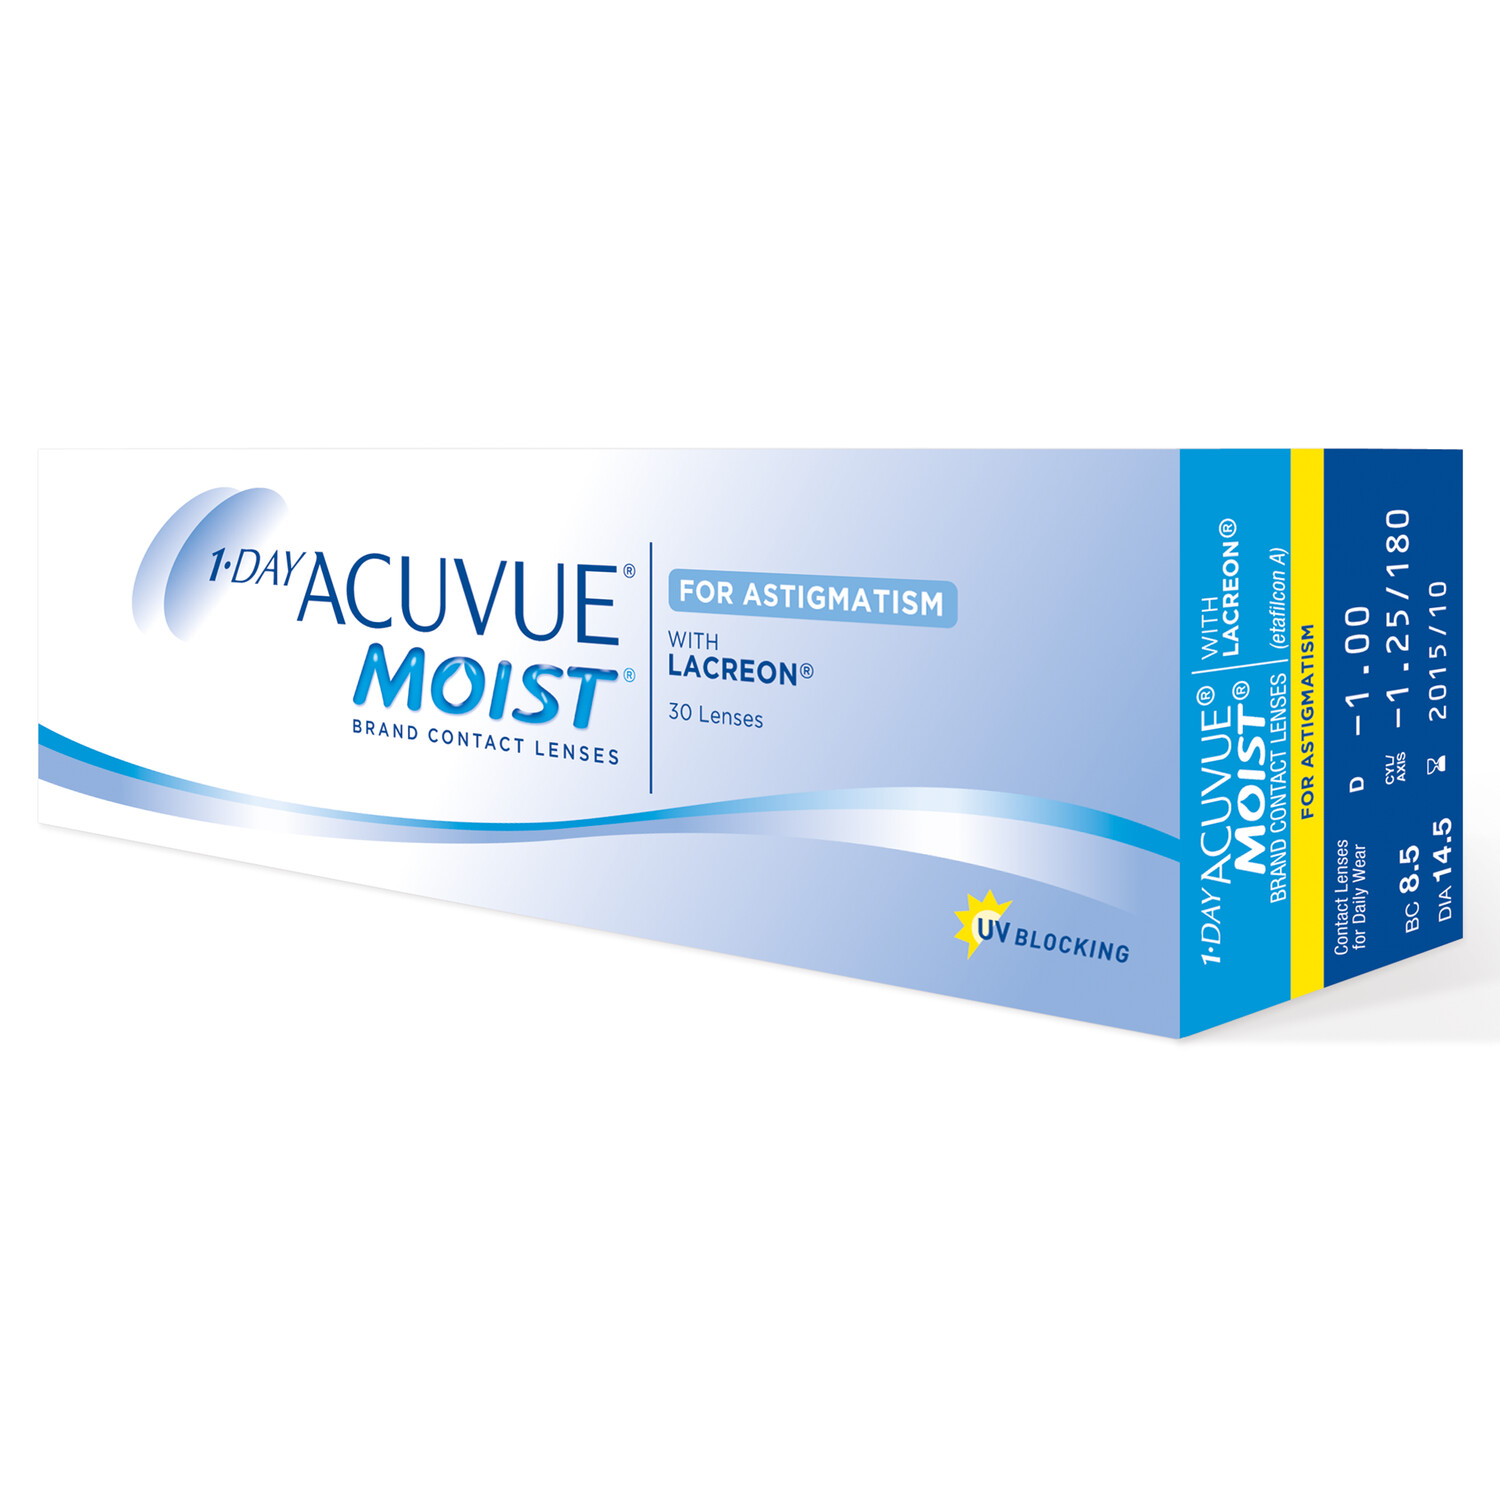 1-DAY ACUVUE® MOIST for ASTIGMATISM 30 LENS BOX